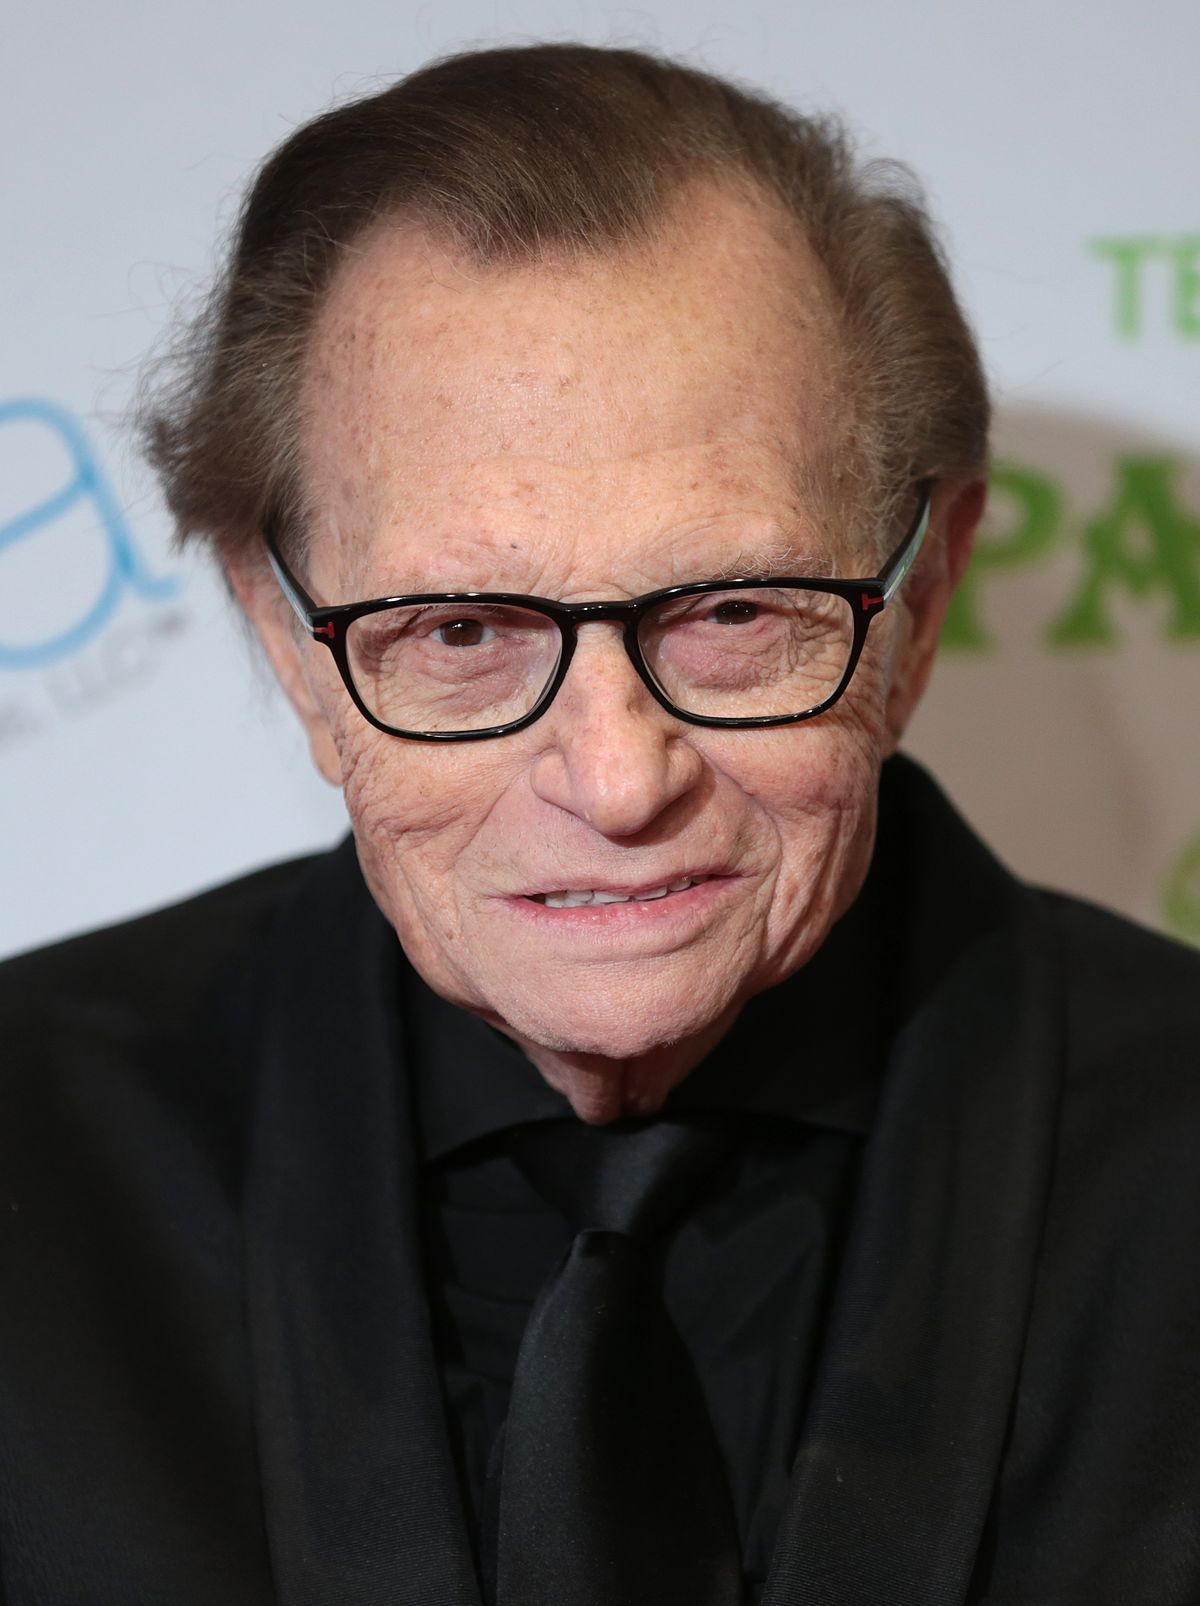 How tall is Larry King?